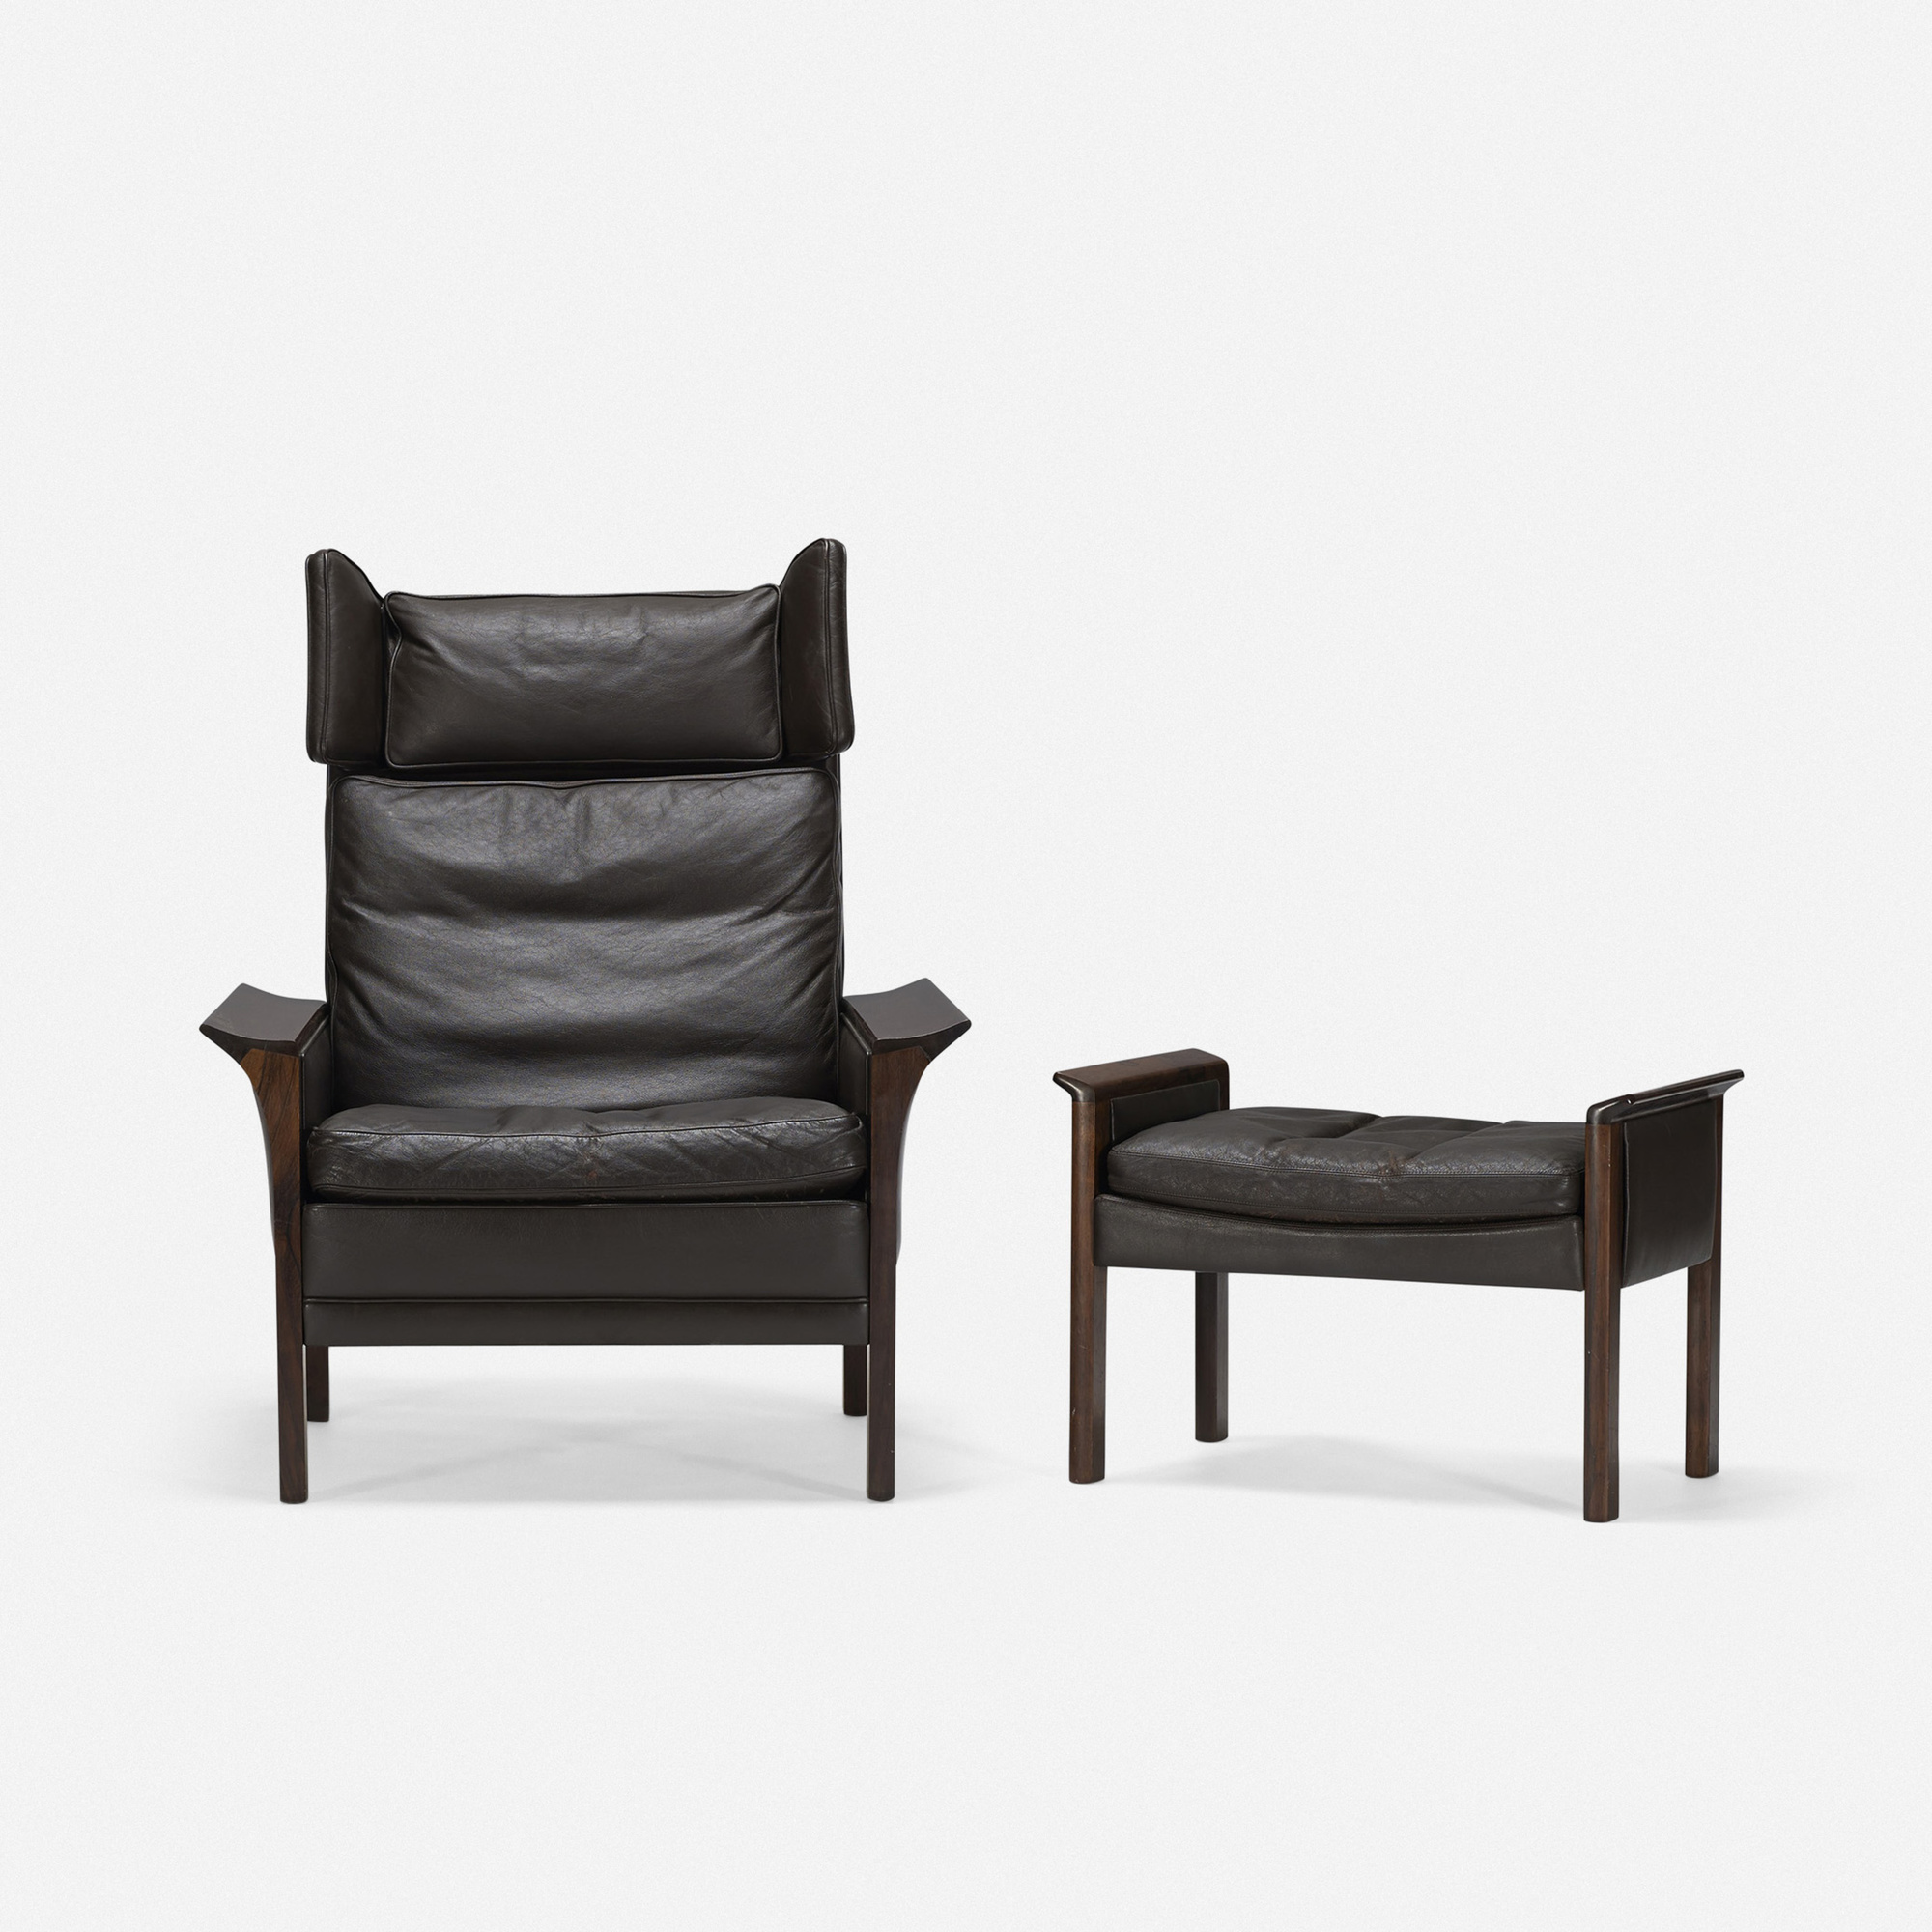 644: Hans Olsen / lounge chair and ottoman, model 500 H (2 of 5)